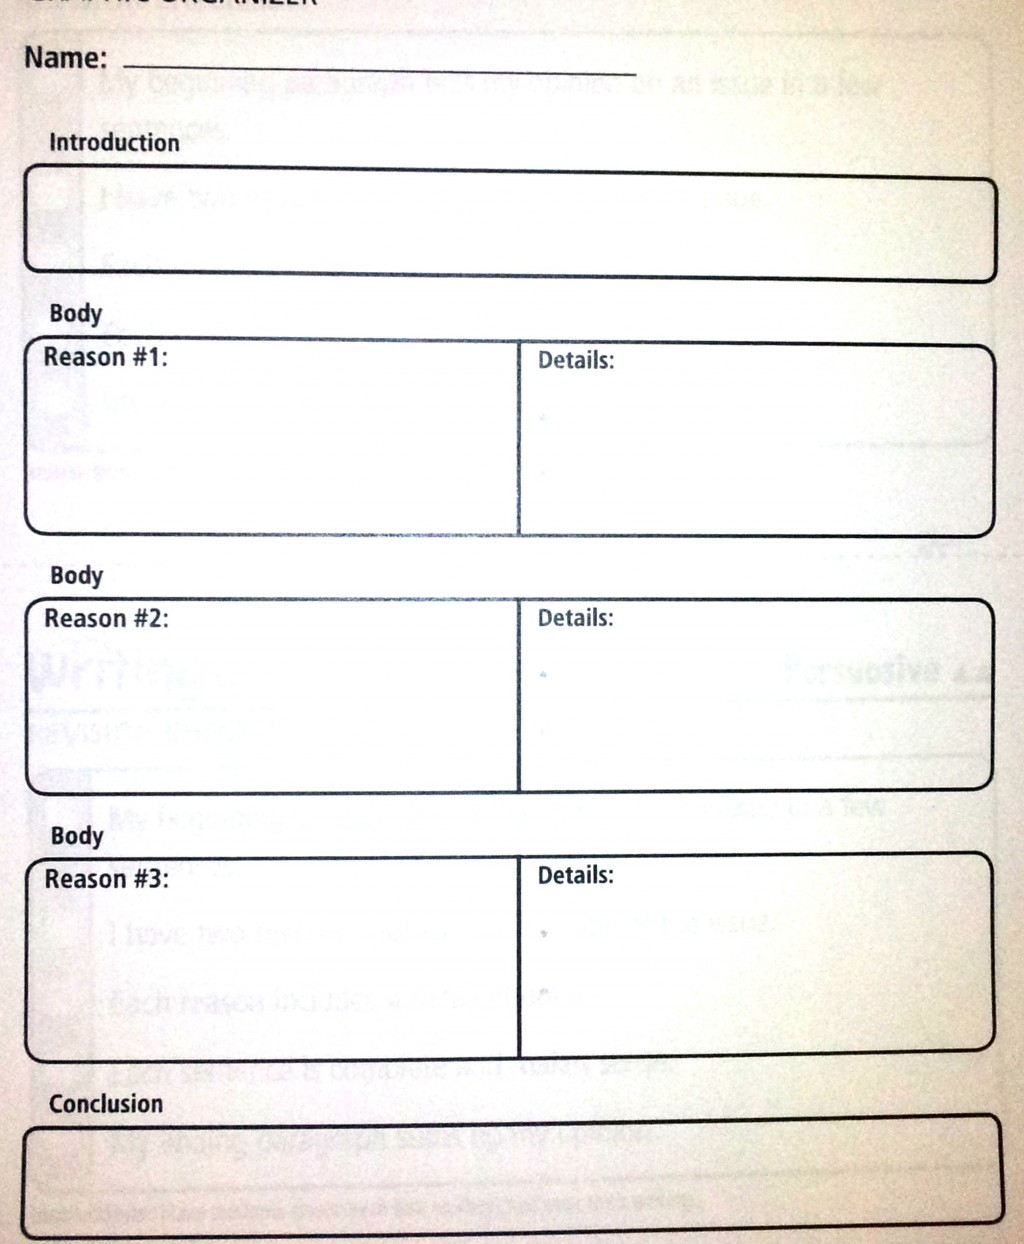 027 Essay Example Paragraph Outline Persuasive Graphic Organizer Complex Amazing 5 5th Grade High School Free Template Large